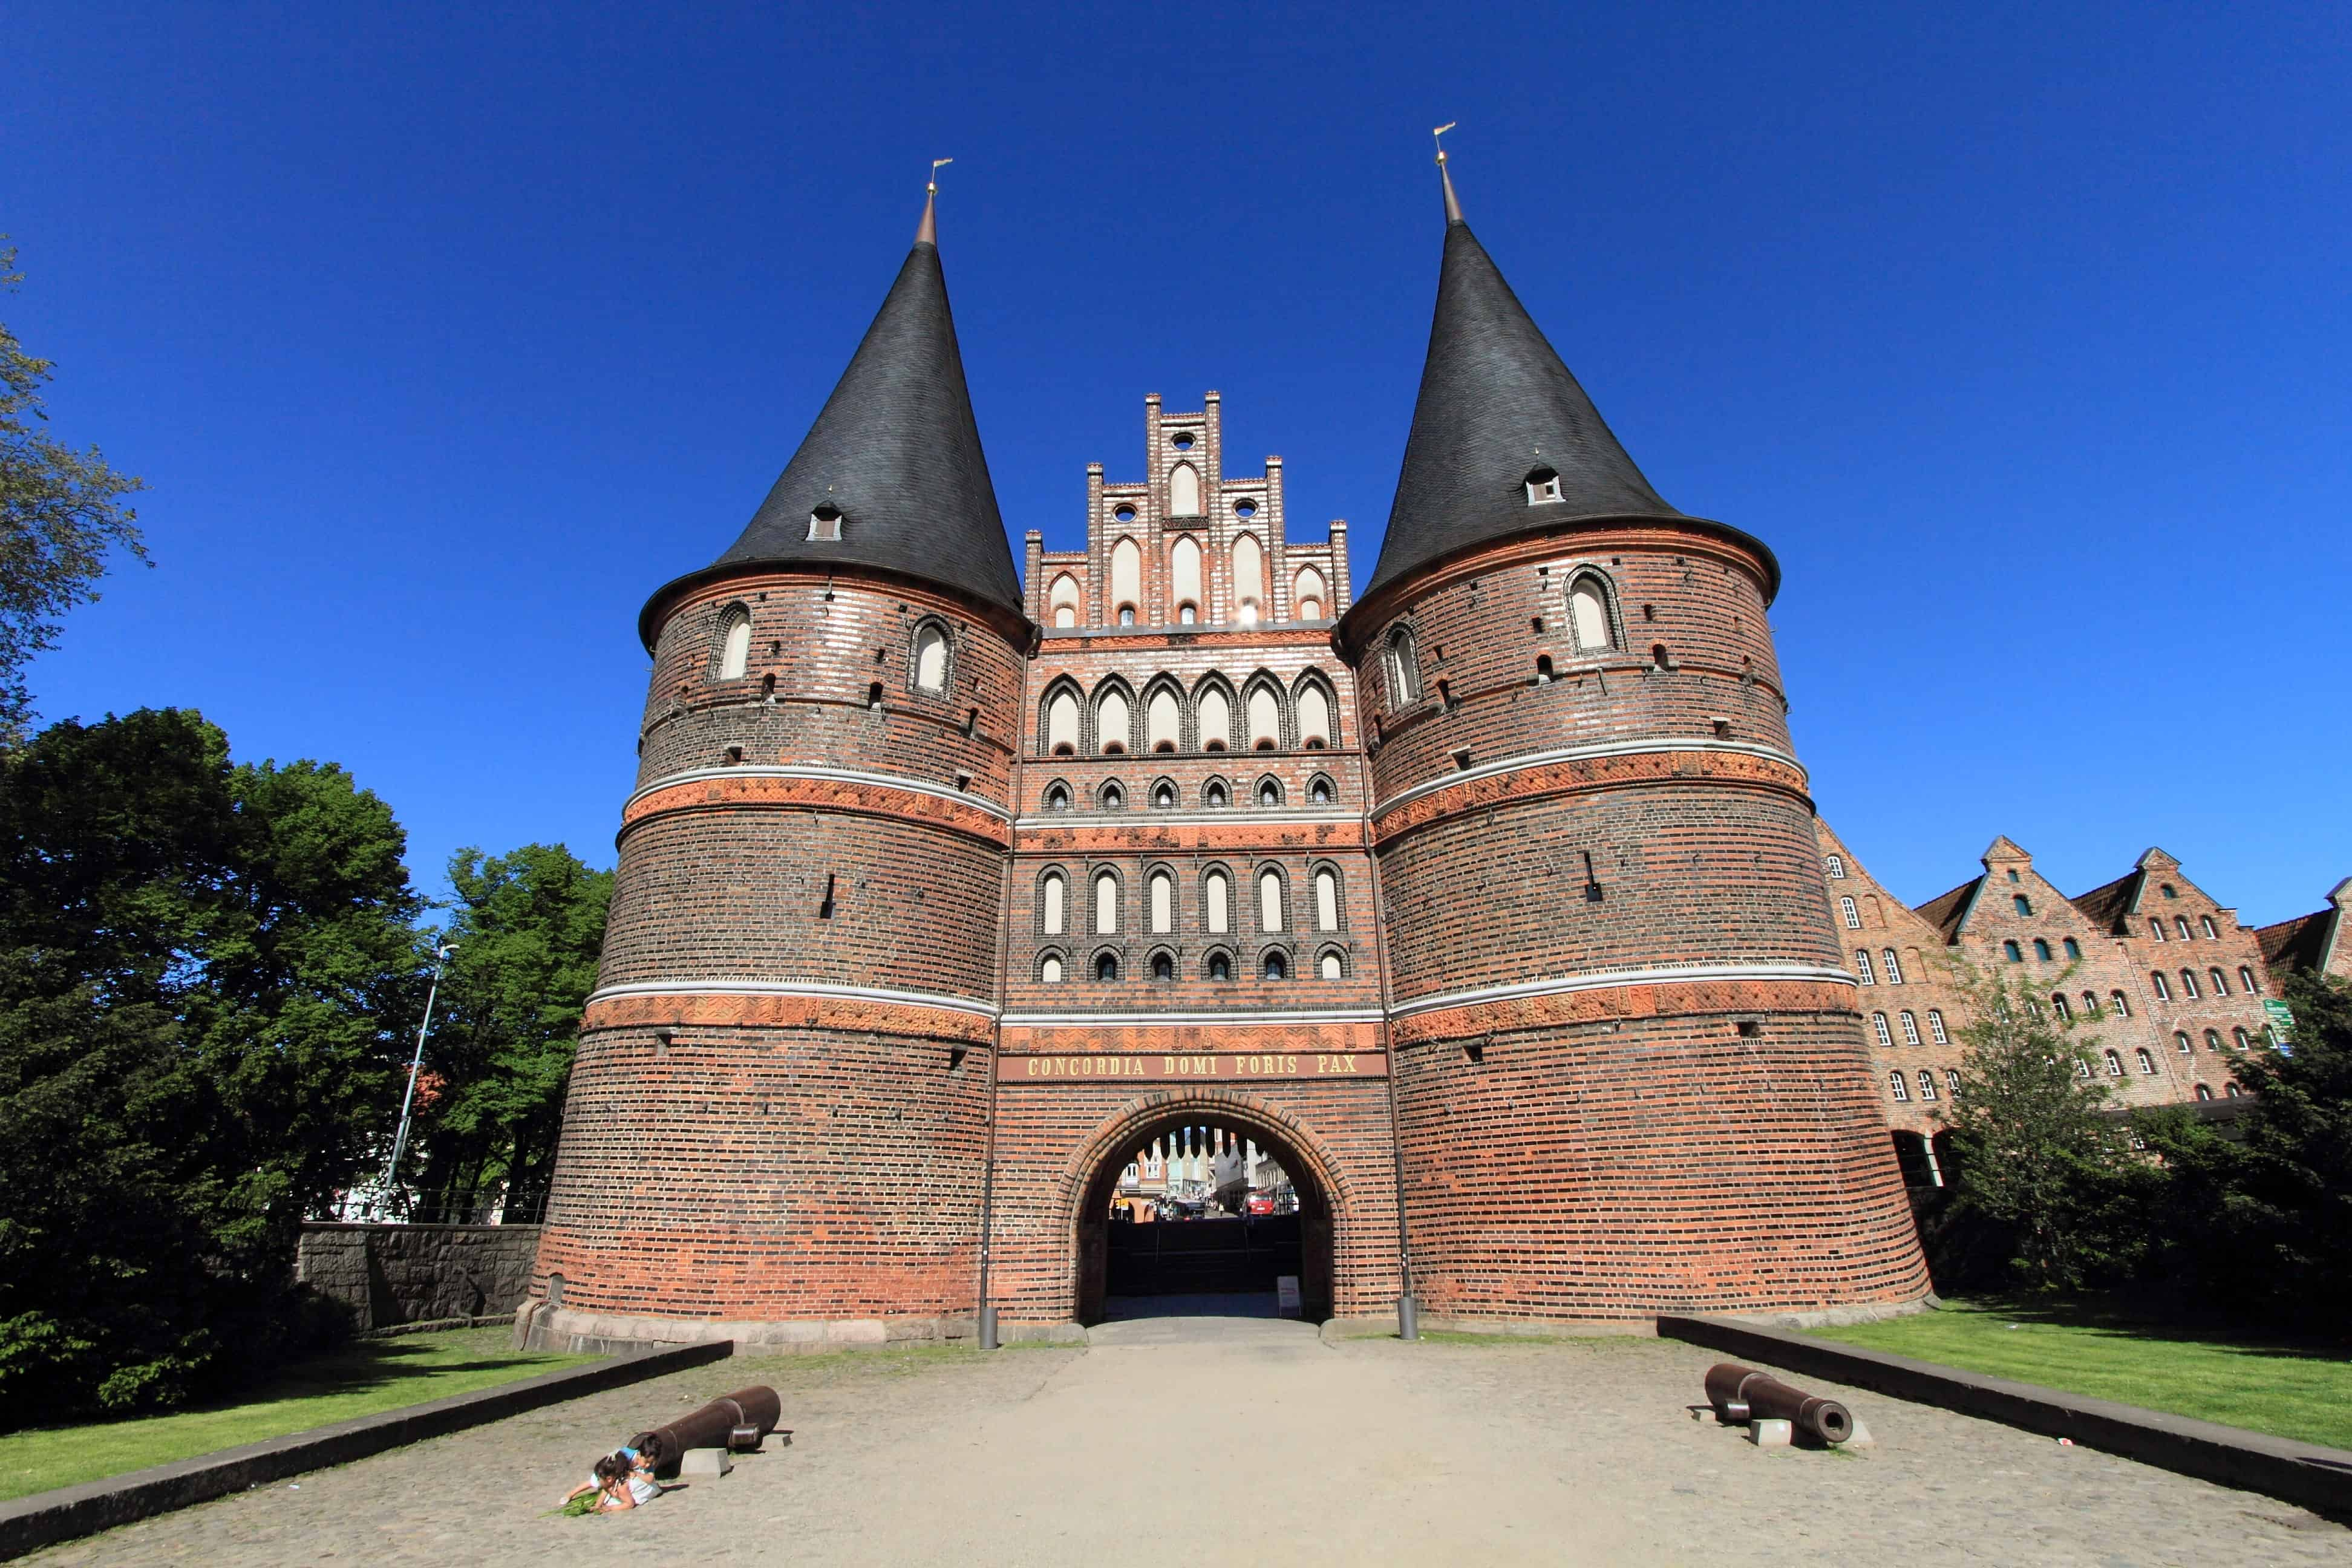 Holstentor gate of Lubeck